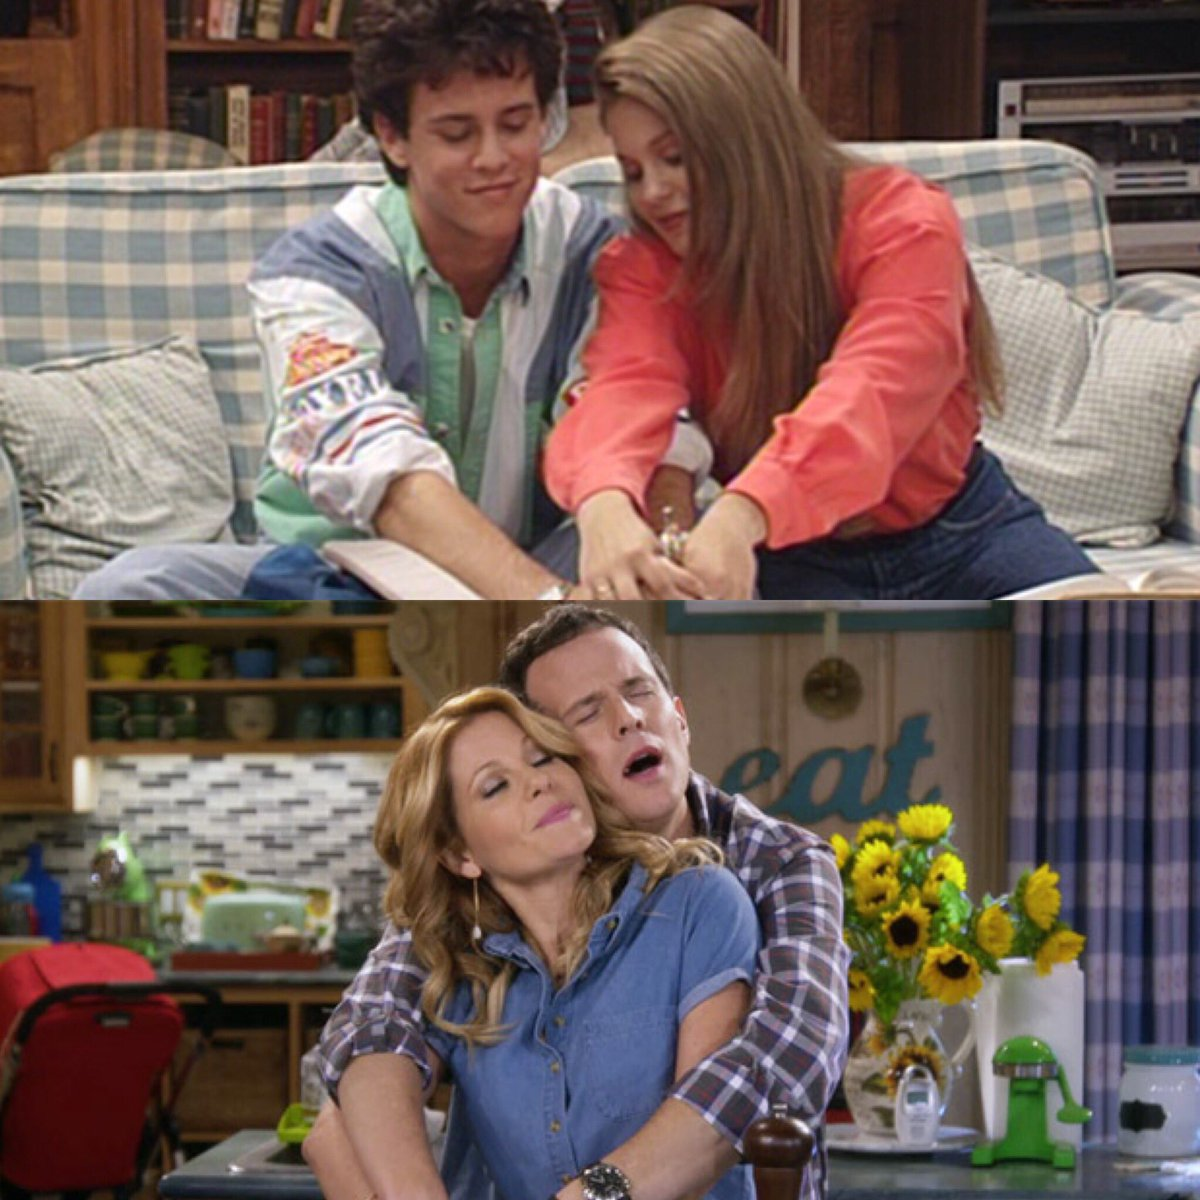 Omhcfullhouse Fullerhousepodcast Twitterissa Hey Tanner Fans Let S All Take A Moment And Wish Scott Weinger Steve Peters Full House Season 5 And Steve Hale Full House Season 6 8 And Fuller House Season 1 Season